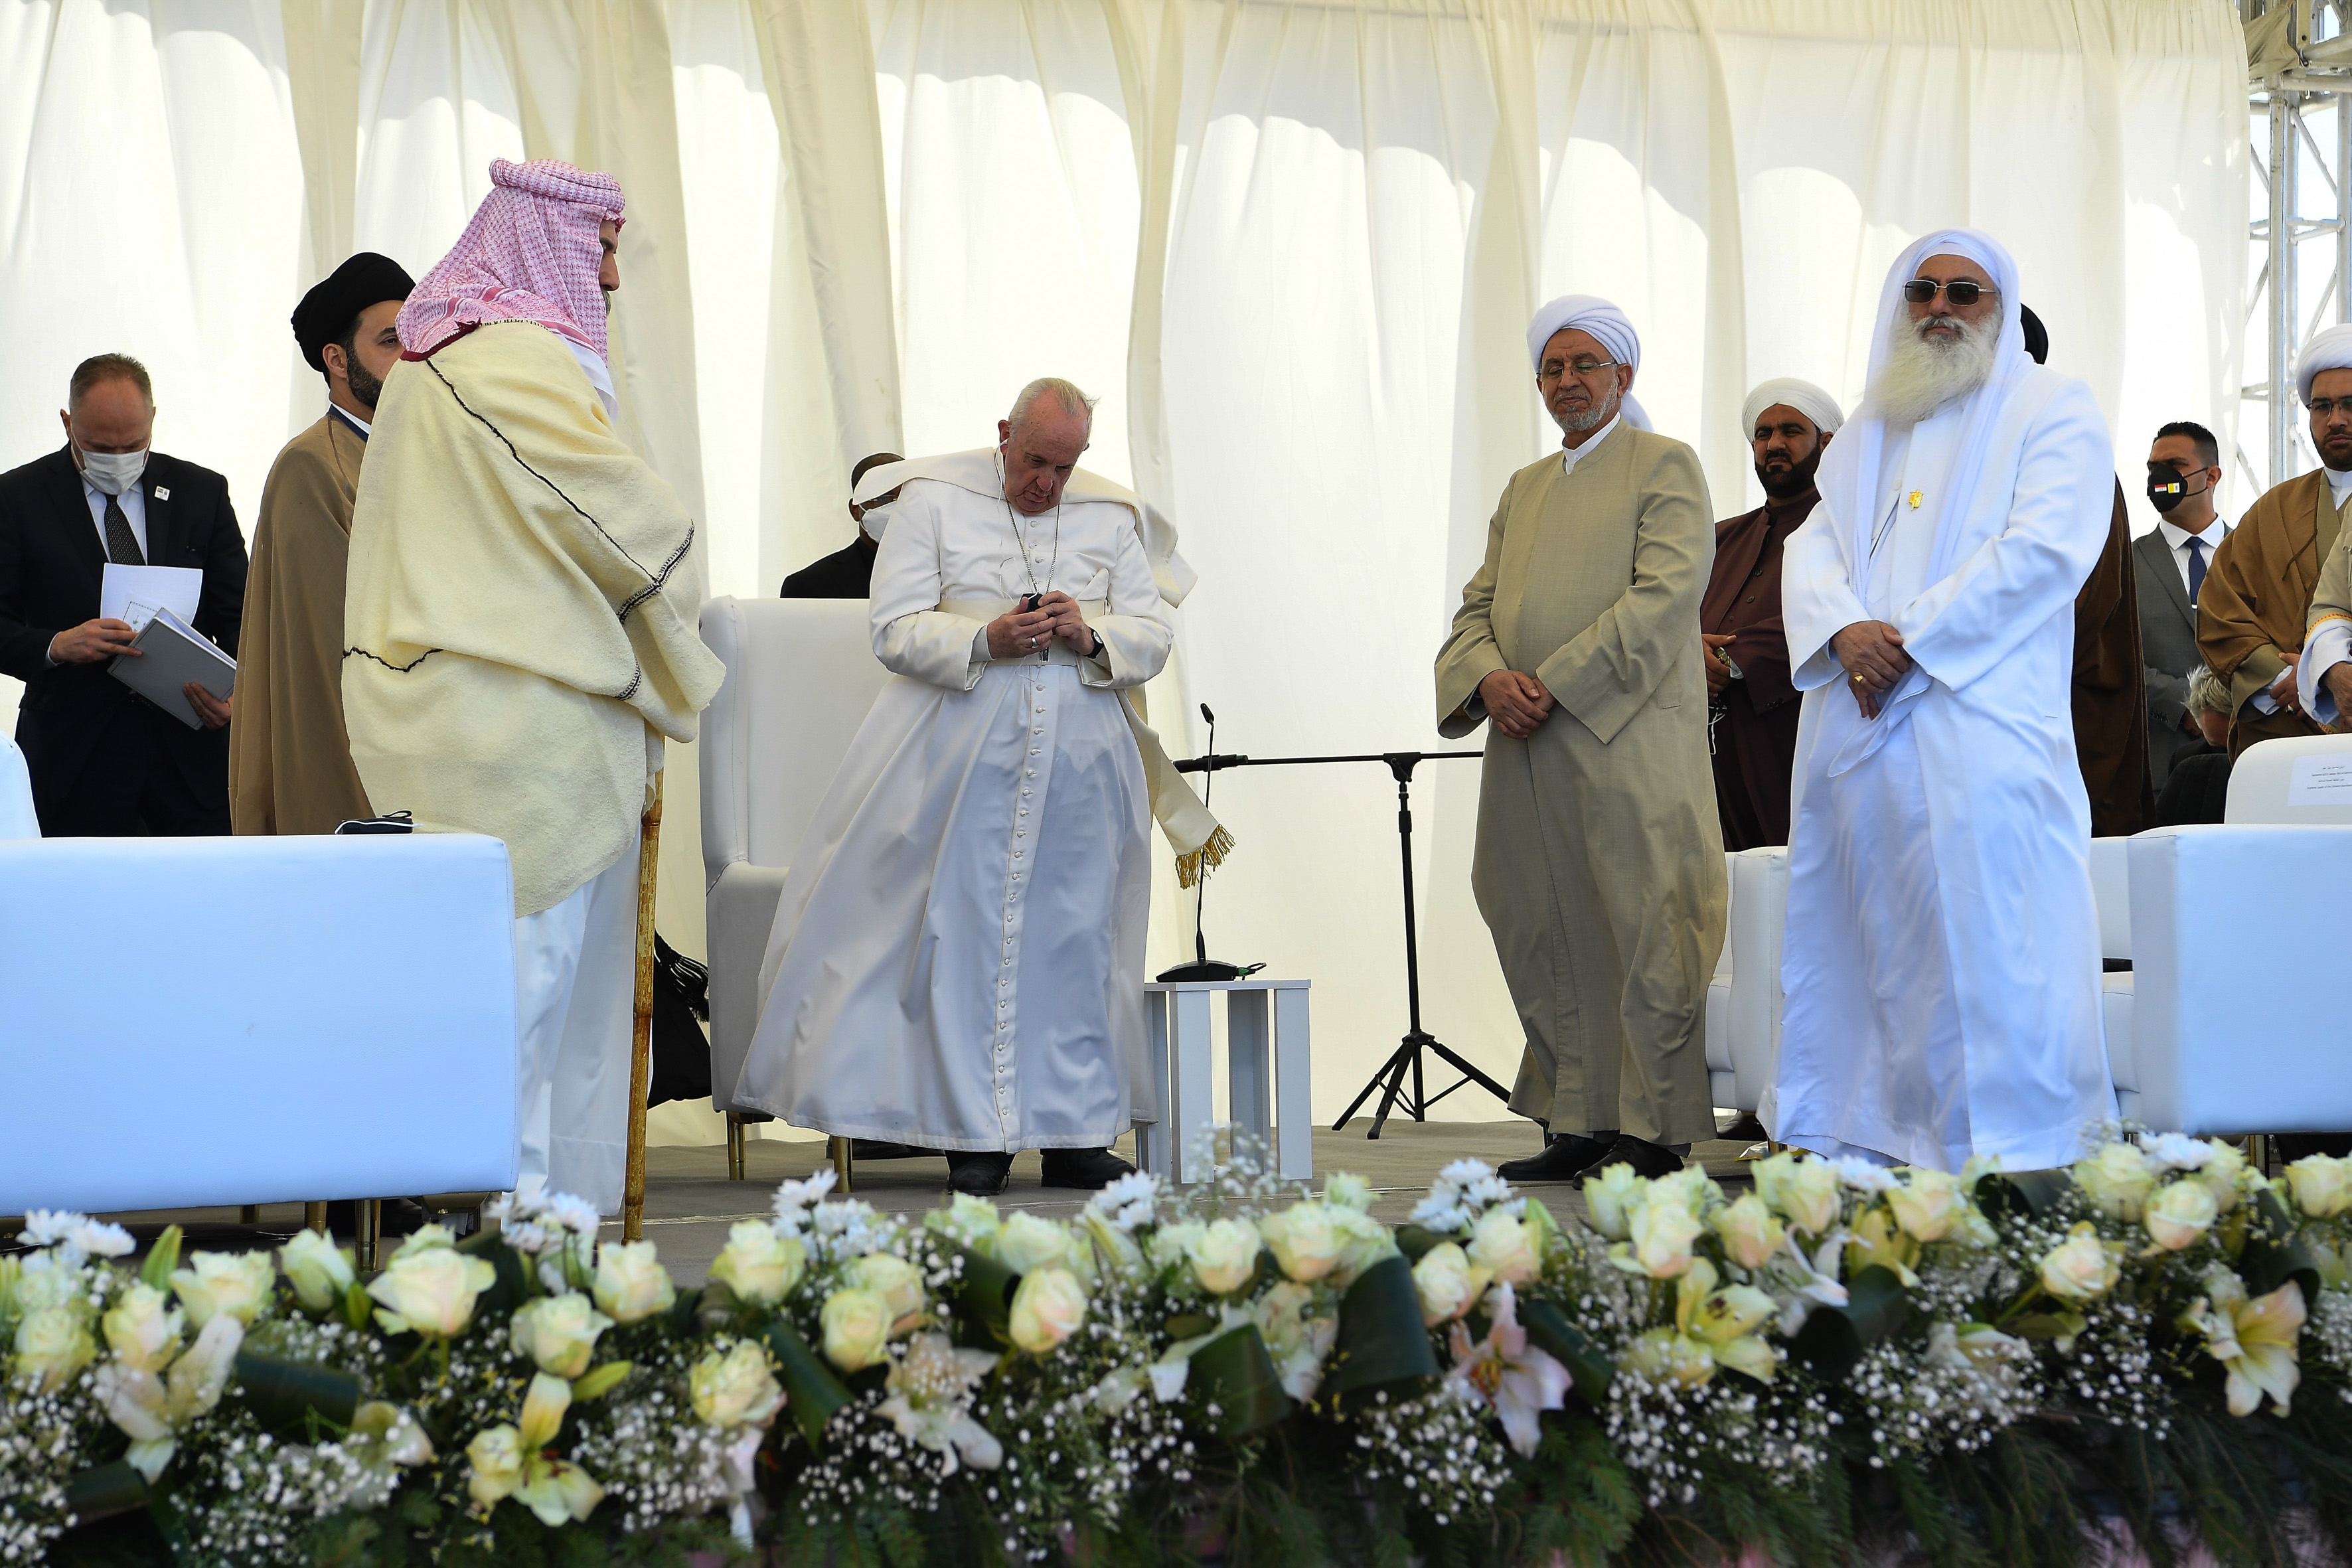 Pope Francis participates in an interreligious meeting at the site of Ur, outside Nasiriyah, Iraq, March 6, 2021.?w=200&h=150